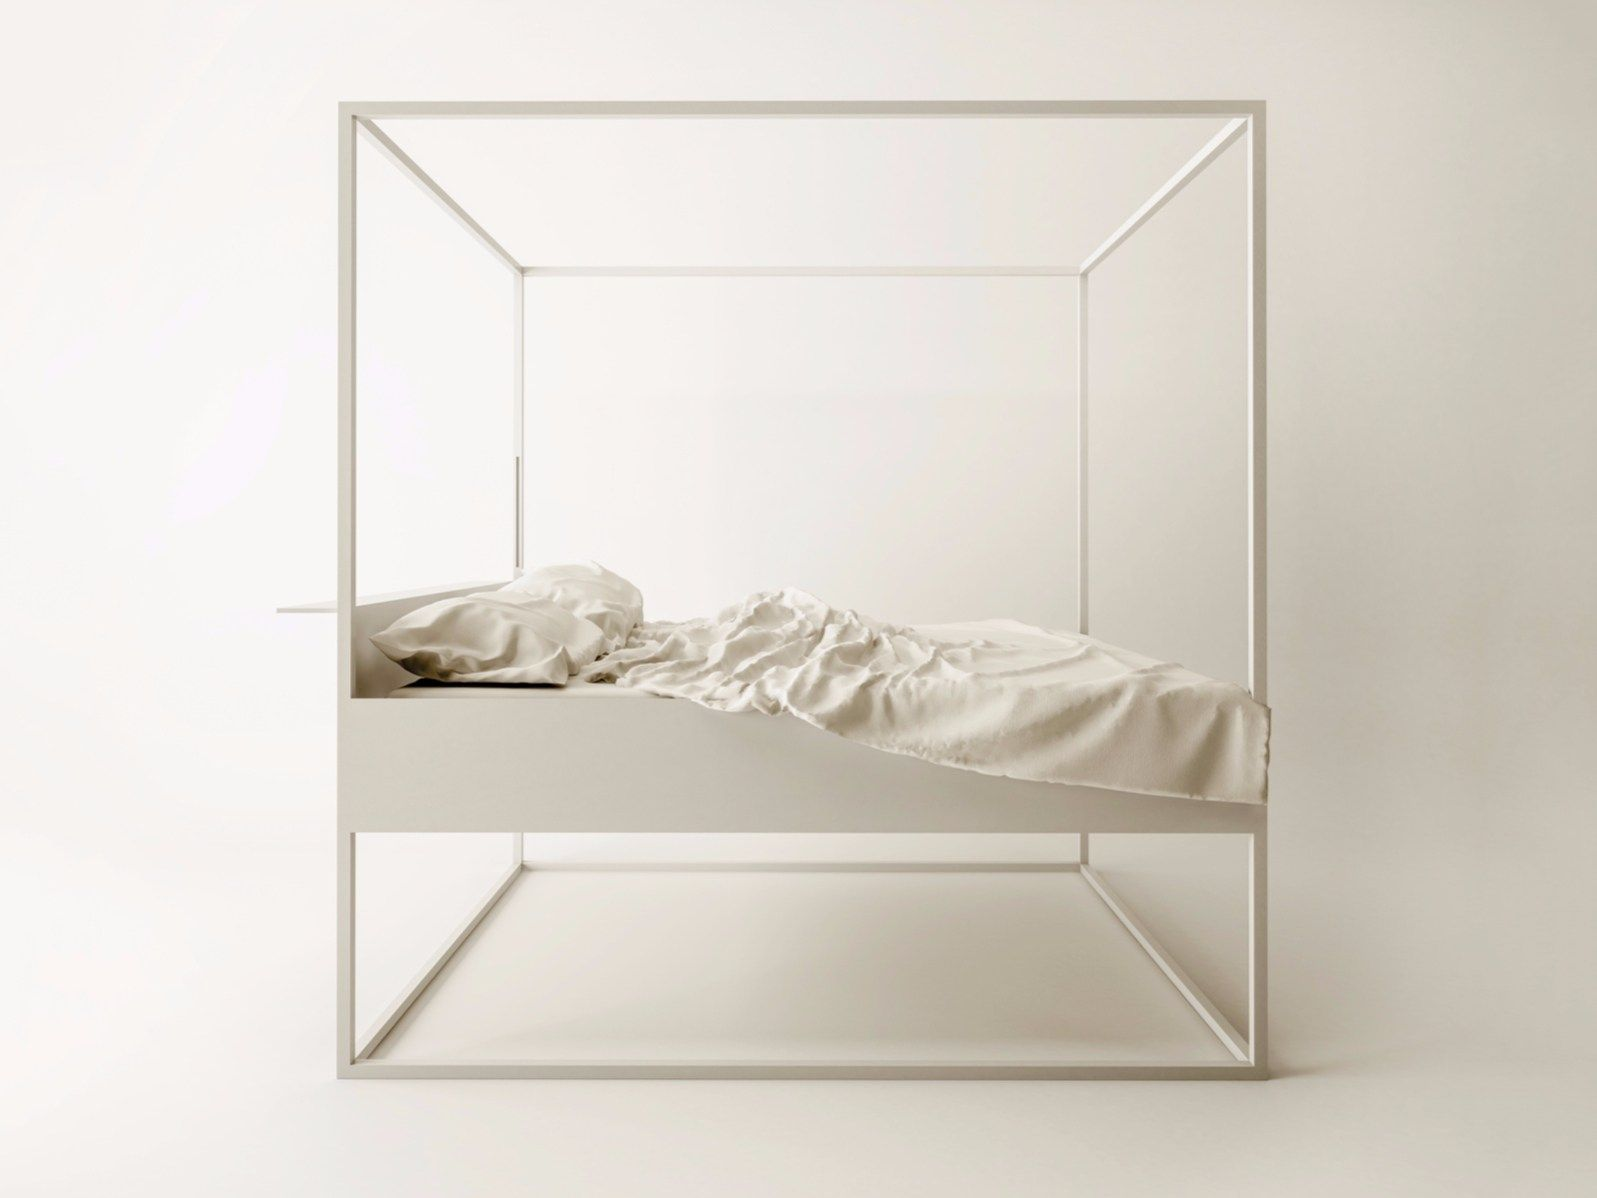 Cama de metal revestido con dosel BED LED by FILODESIGN di Michela ...